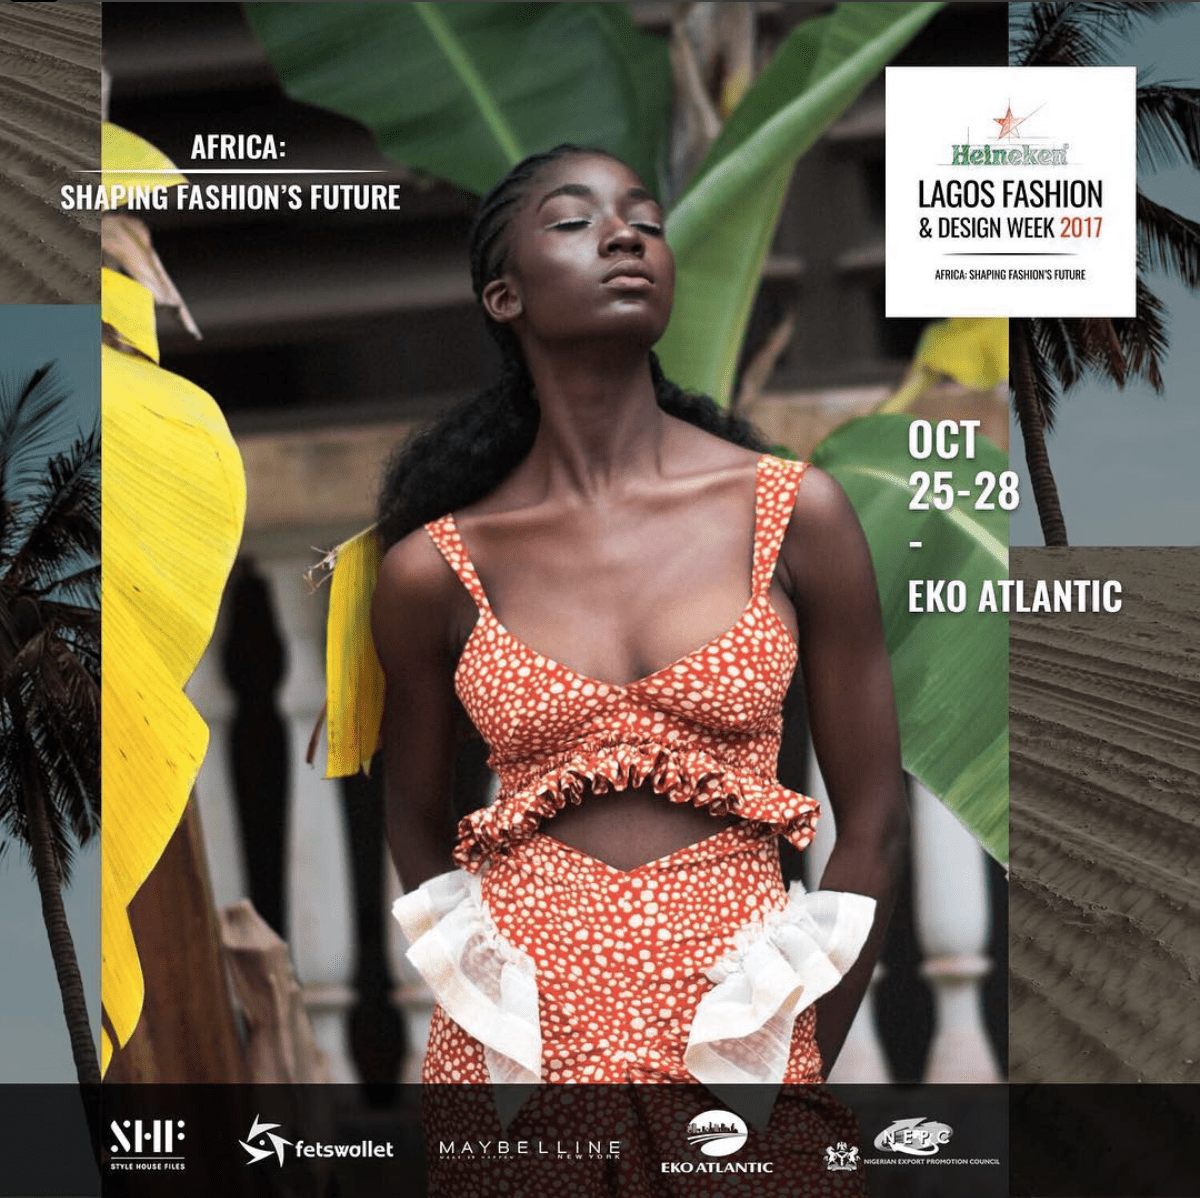 #HLFDW2017: 6 designers we're excited for at this year's Lagos Fashion and Design Week